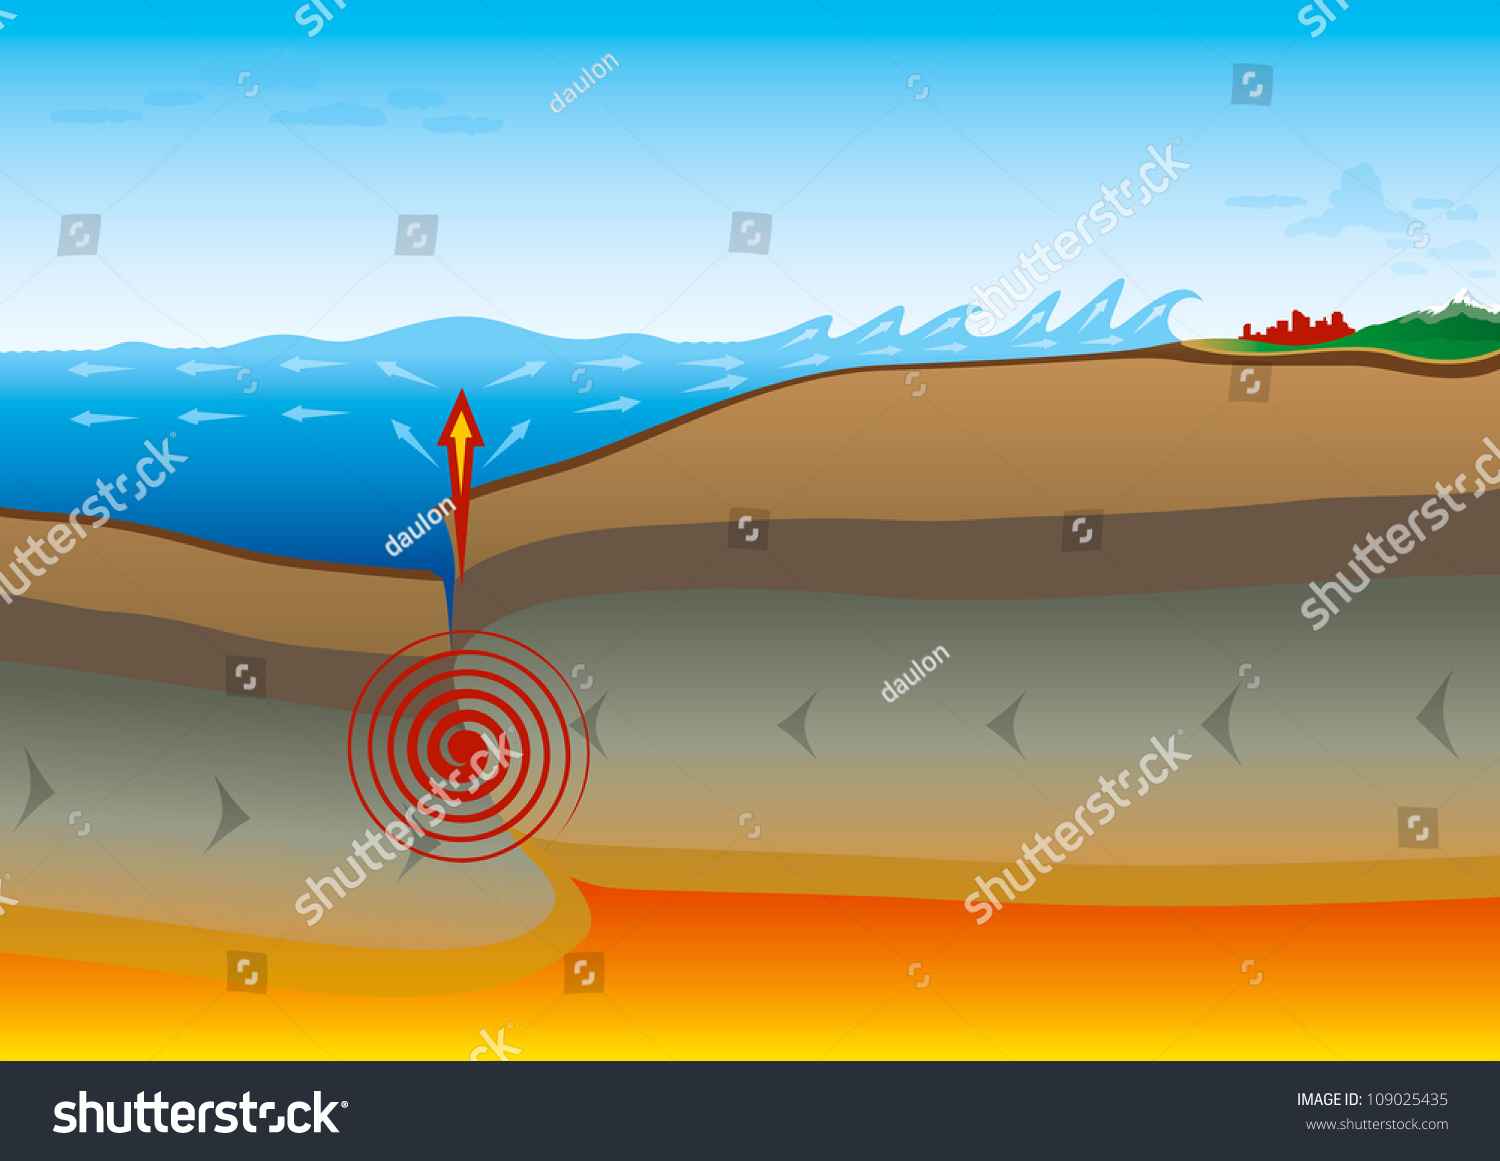 Tsunami Wave From Earthquake Heading For The City Stock Vector Illustration 109025435   Shutterstock